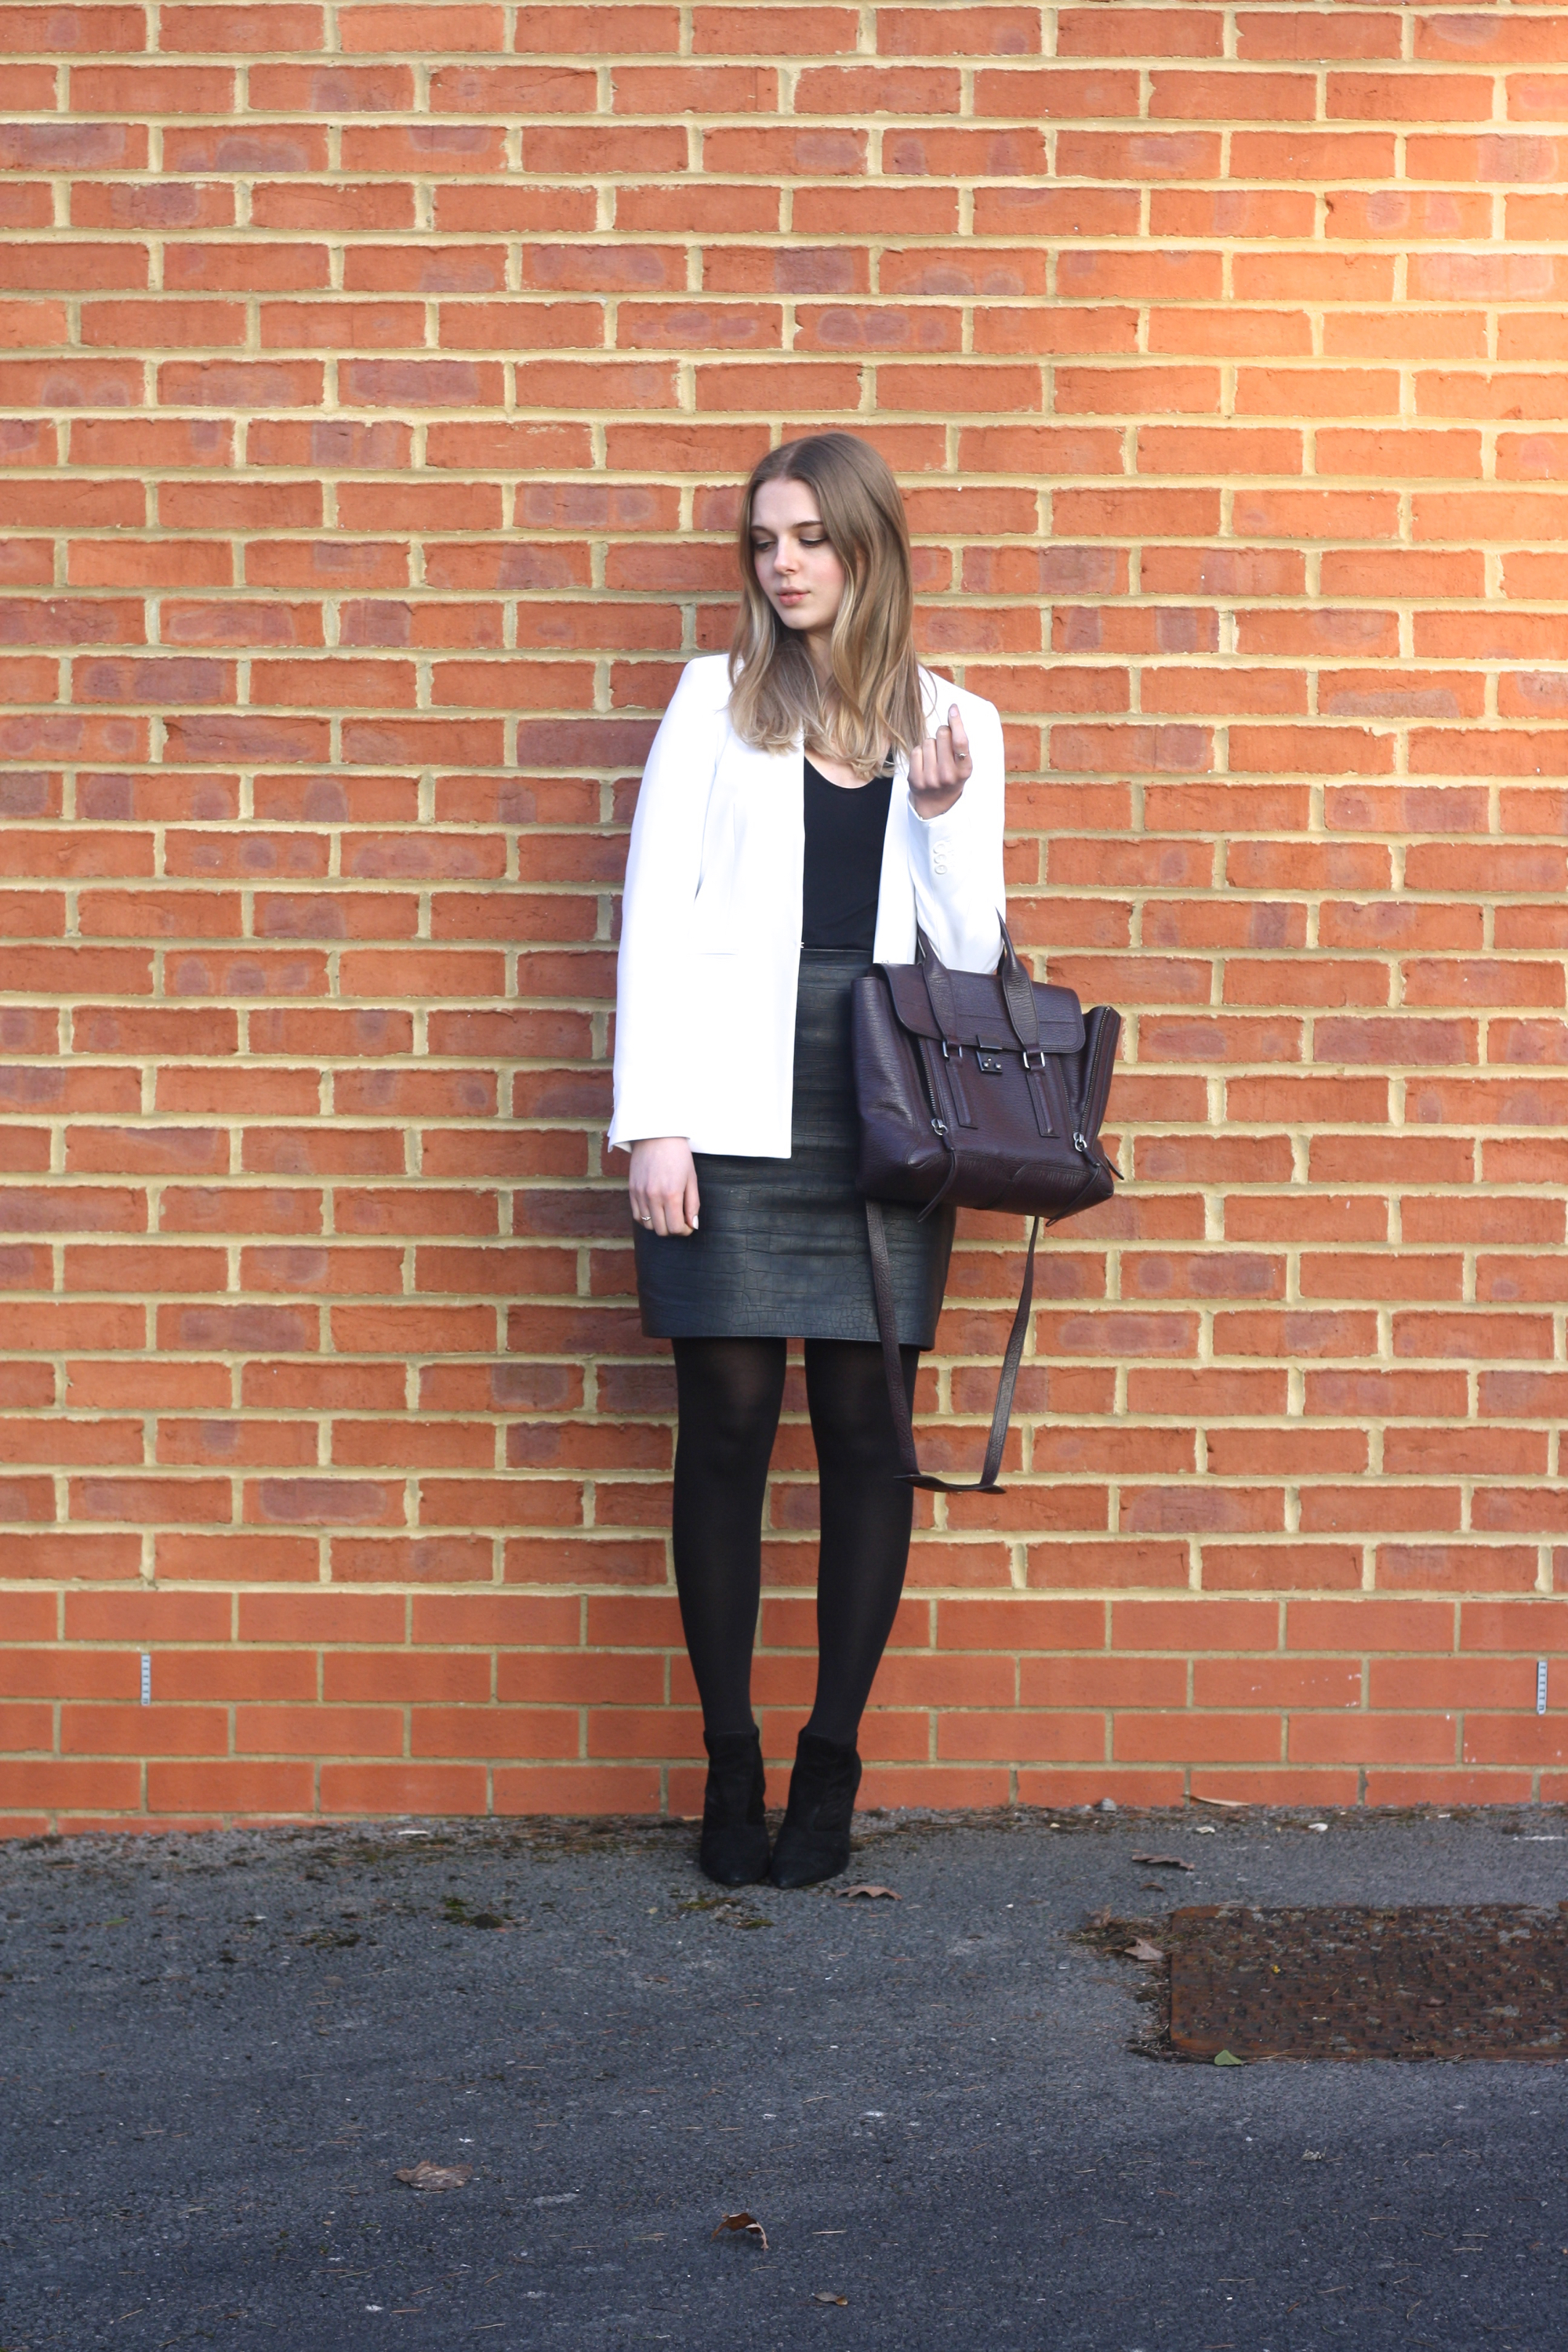 Topshop Boutique black leather skirt, Zara white blazer and Topshop black tee